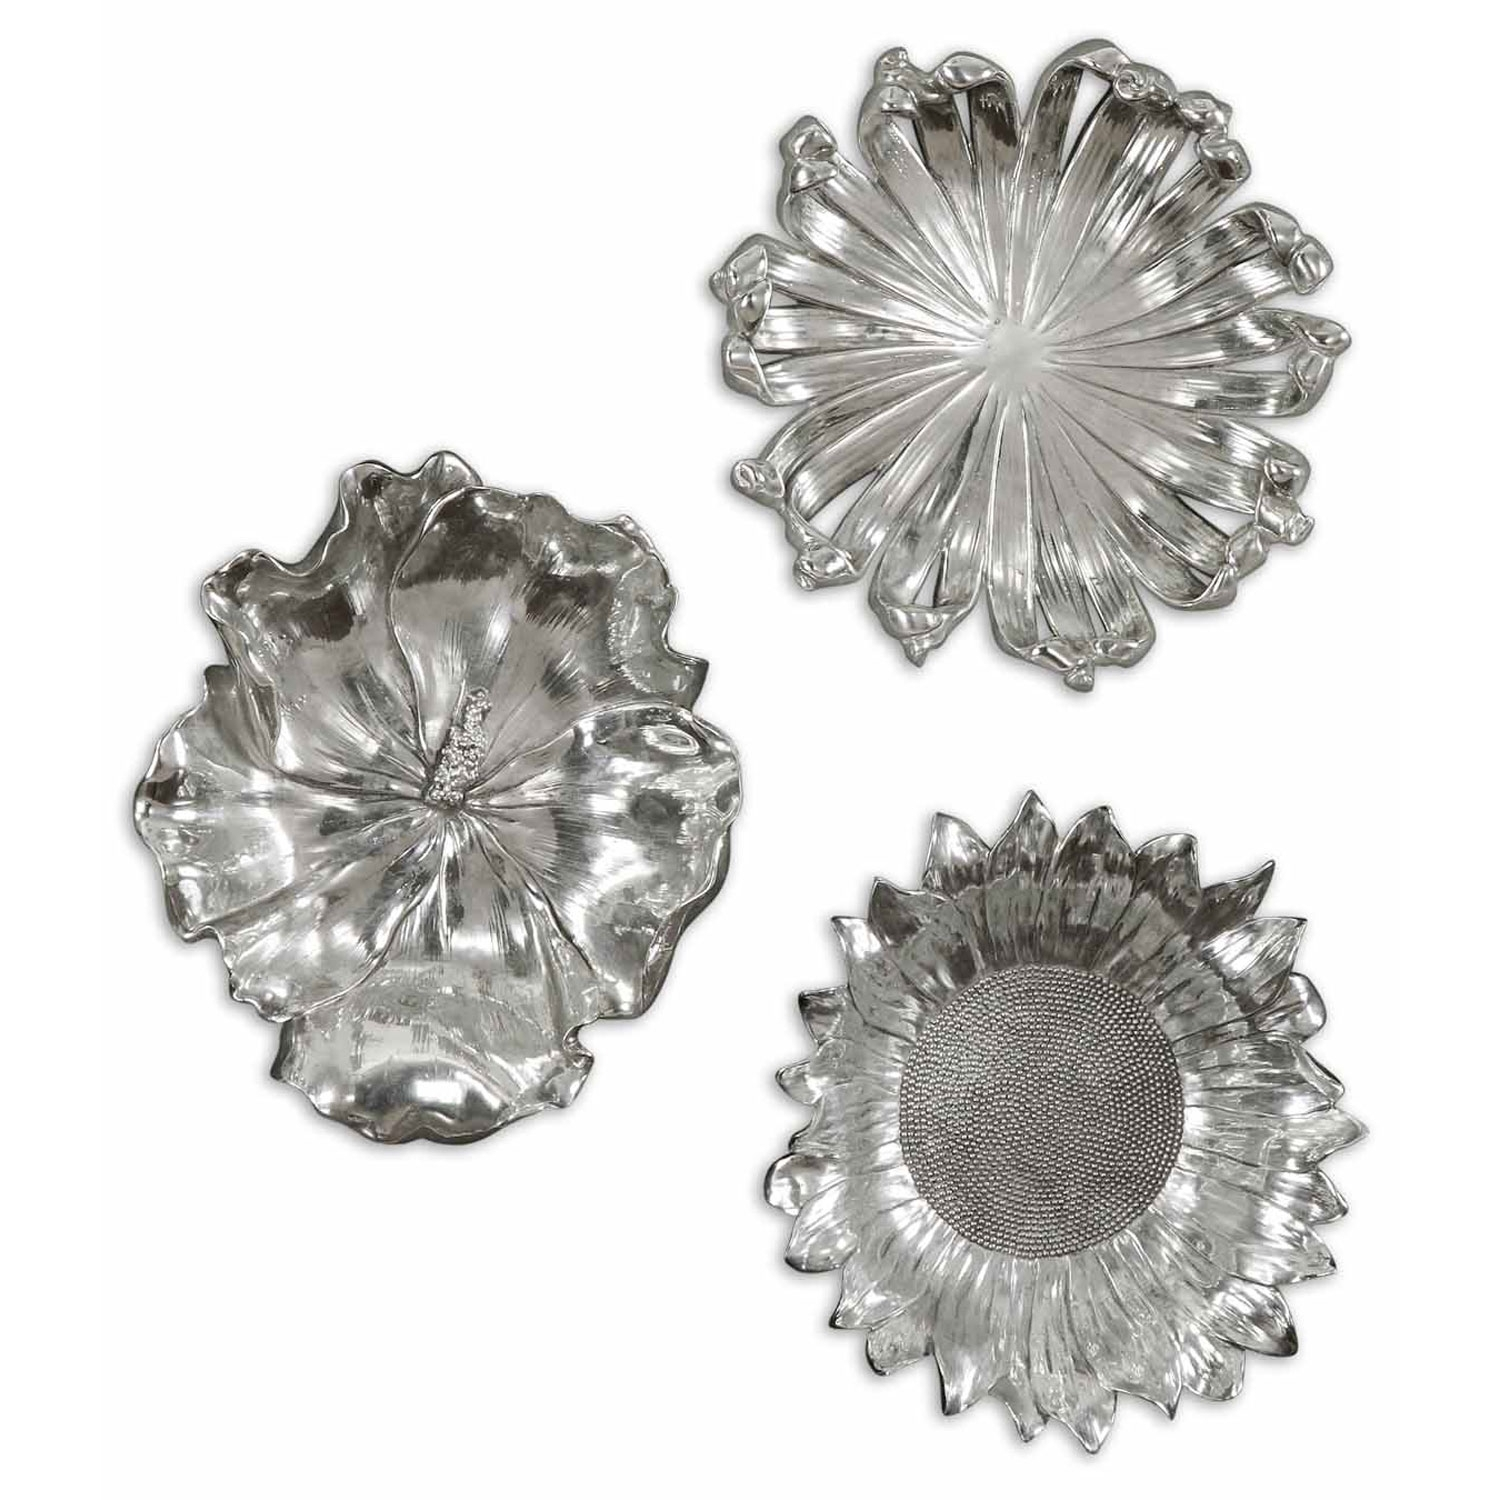 Uttermost Silver Flowers Metal Wall Art, Set Of Three 08503 | Bellacor Inside Most Up To Date Metal Flower Wall Art (View 14 of 15)